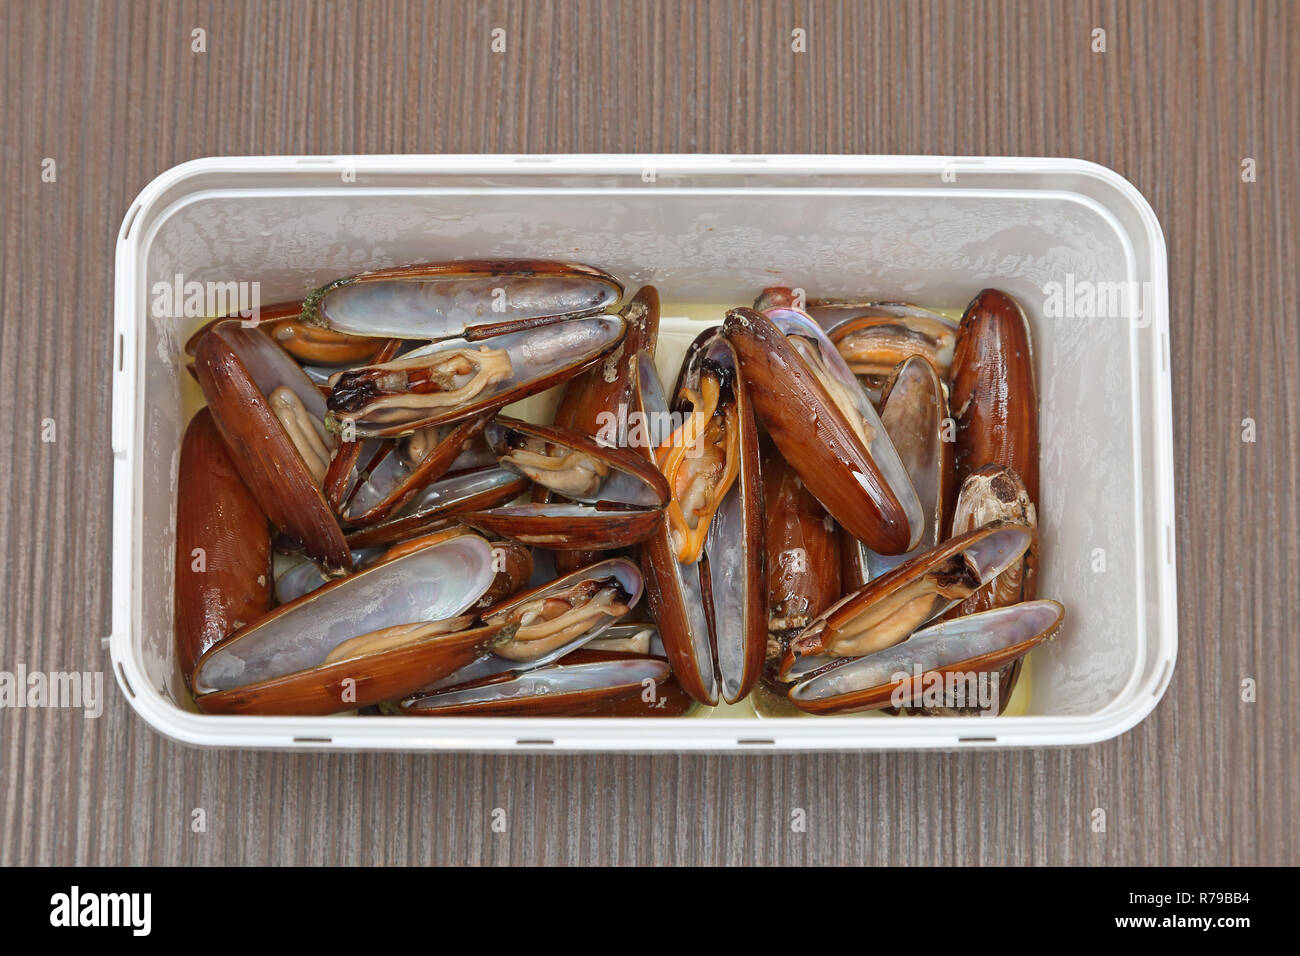 Date Clams - Stock Image